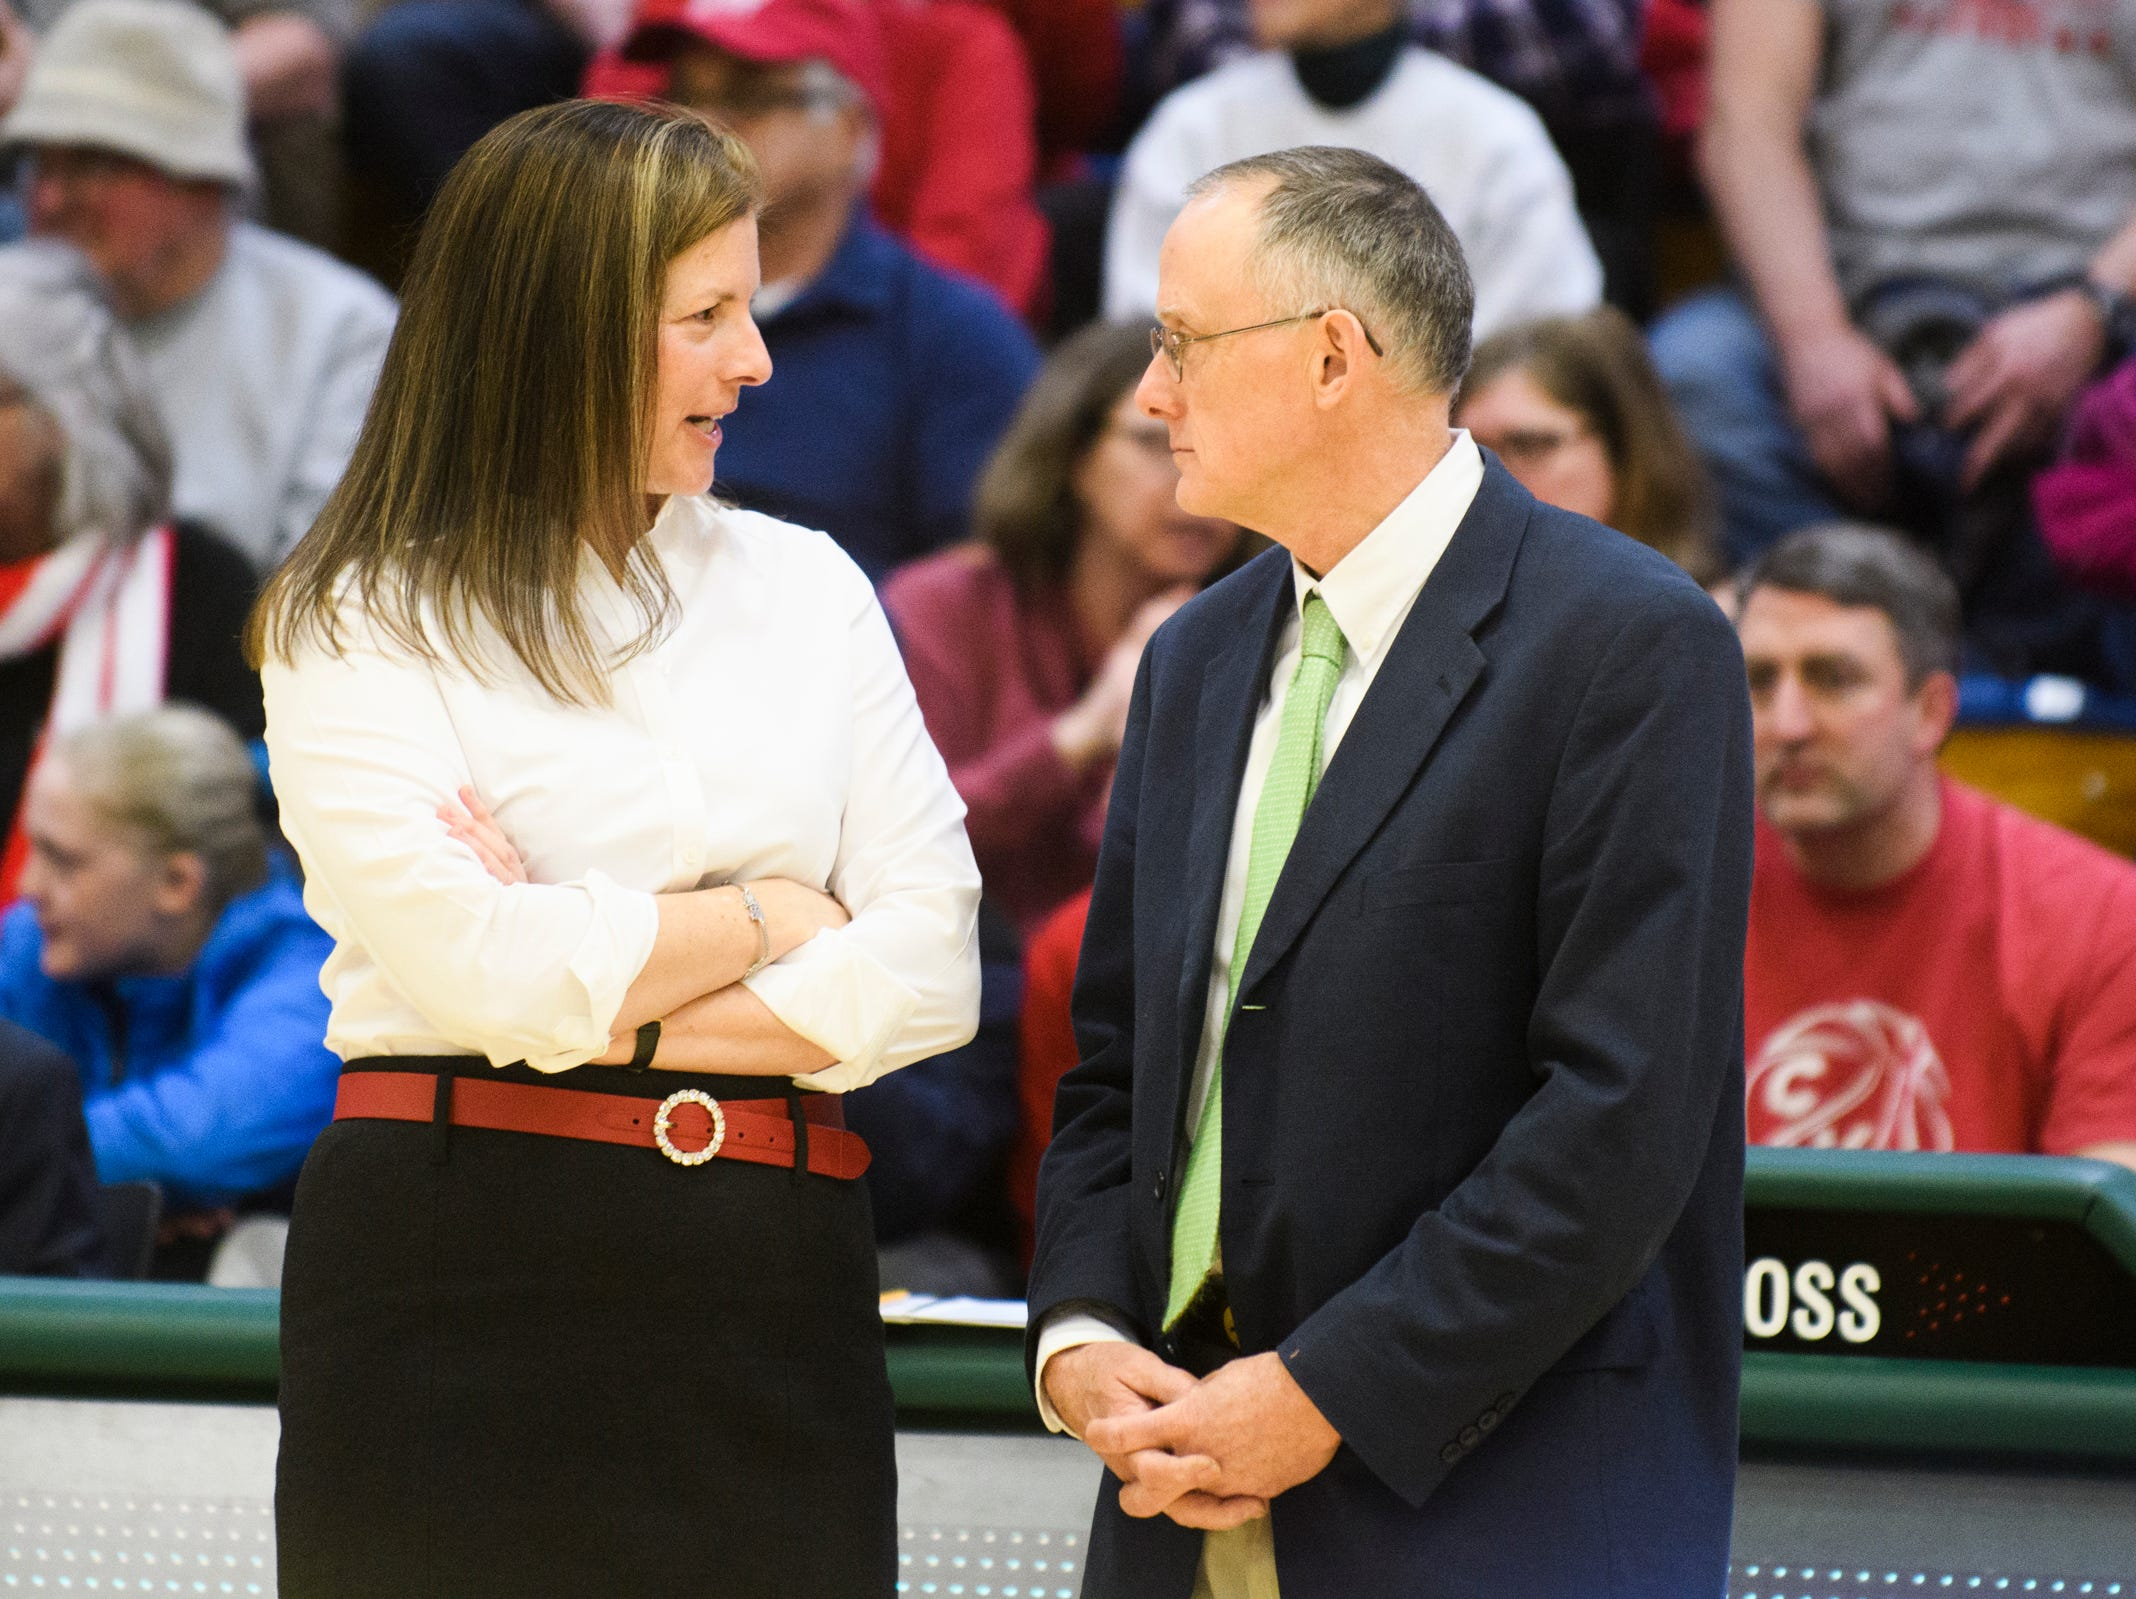 CVU head coach Ute Otley and St. Johnsbury head coach Jack Driscoll talk to each other during the division I girls basketball championship basketball game between the St. Johnsbury Hilltoppers and the Champlain Valley Union Redhawks at Patrick Gym on Sunday afternoon March 10, 2019 in Burlington, Vermont.